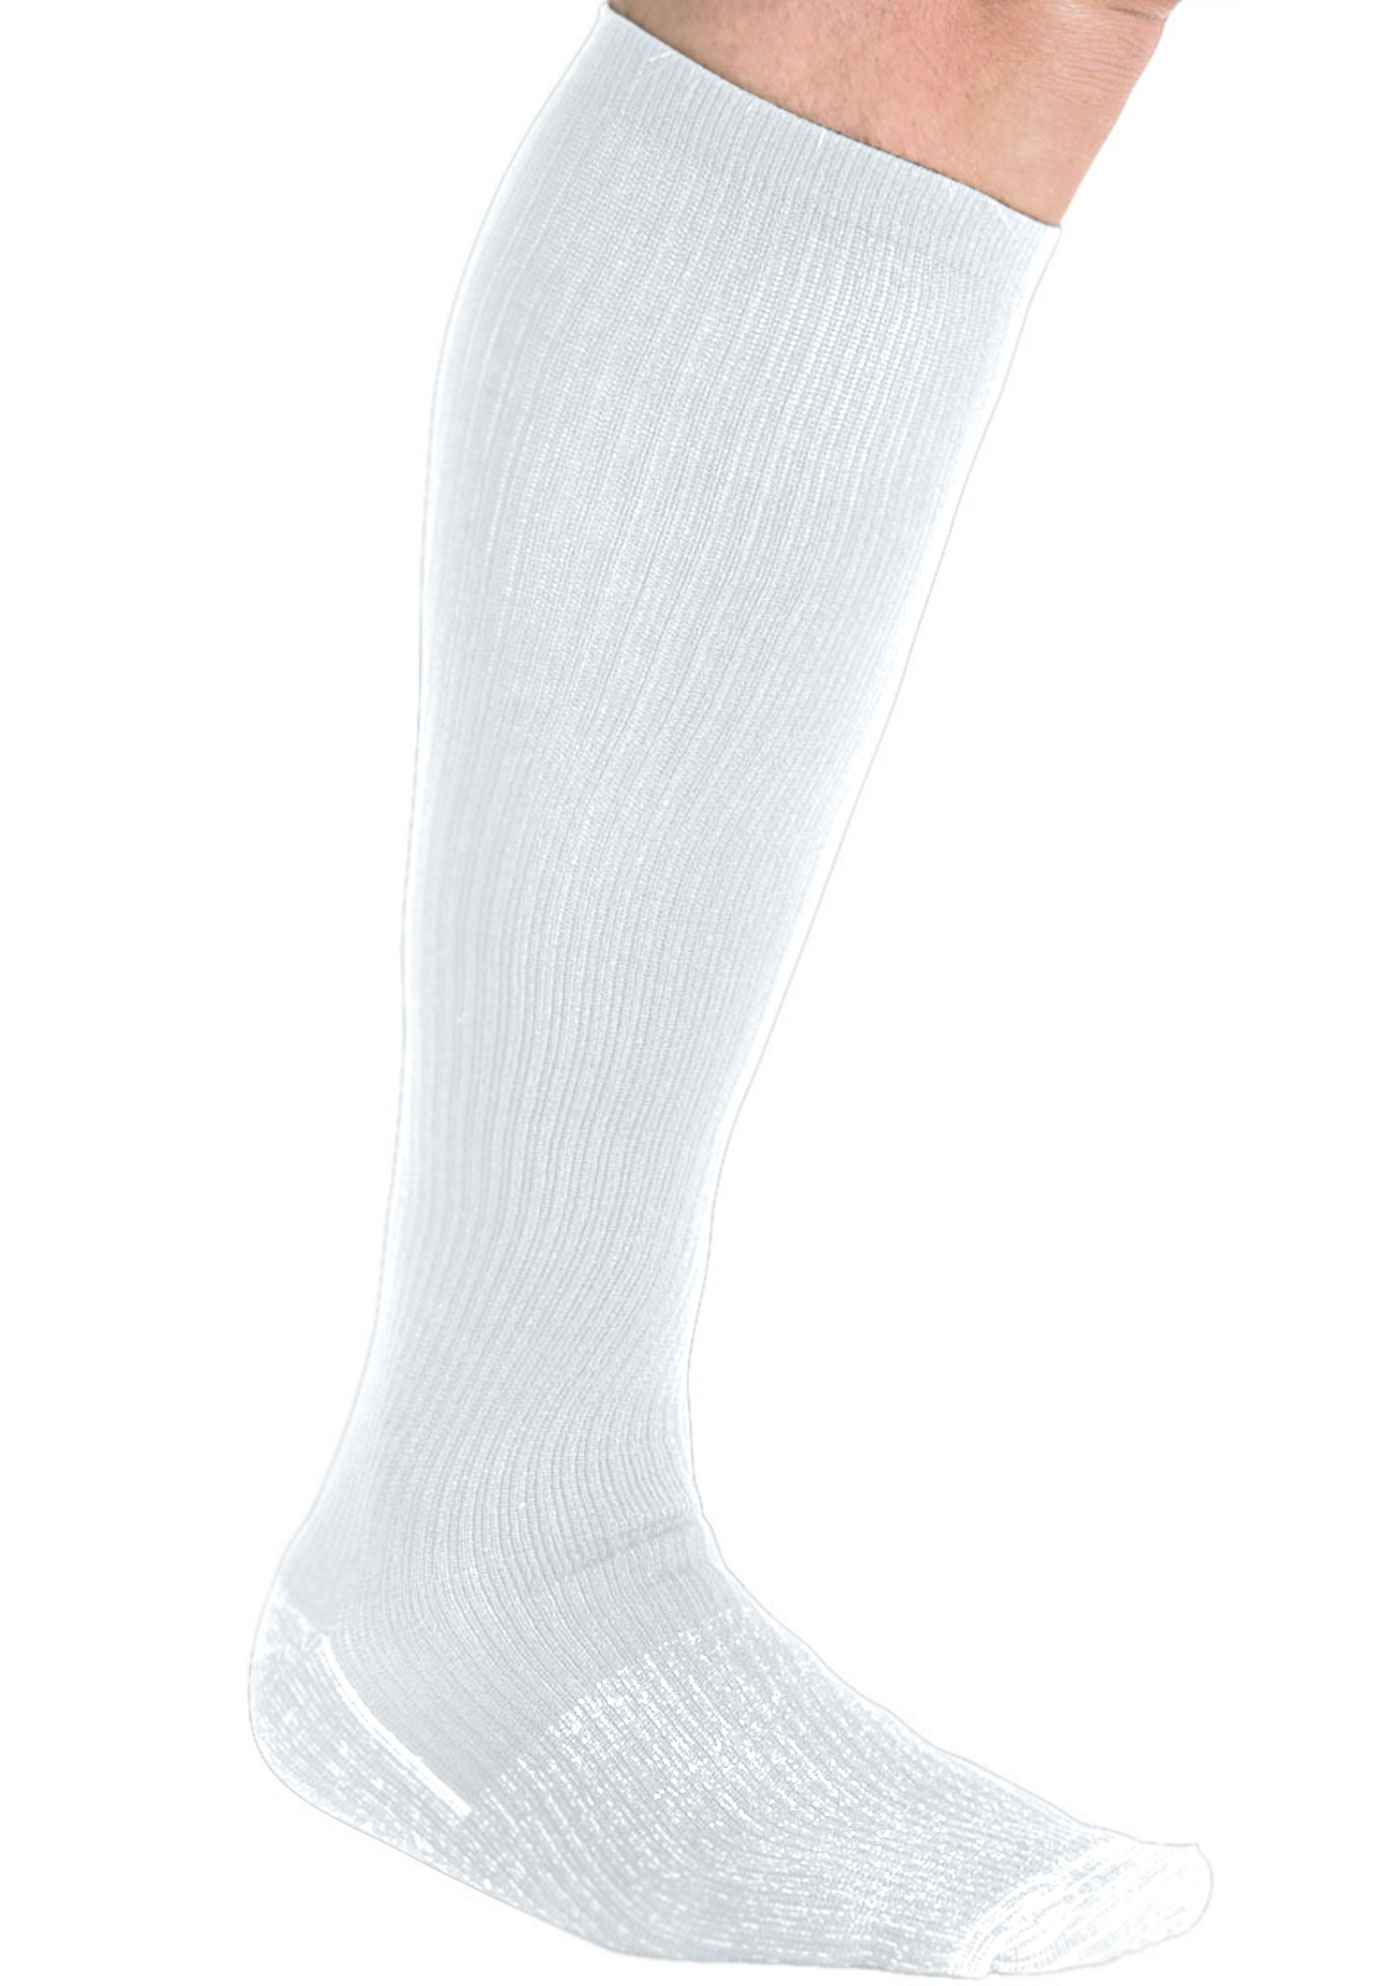 Over-the-Calf Compression Silver Socks,